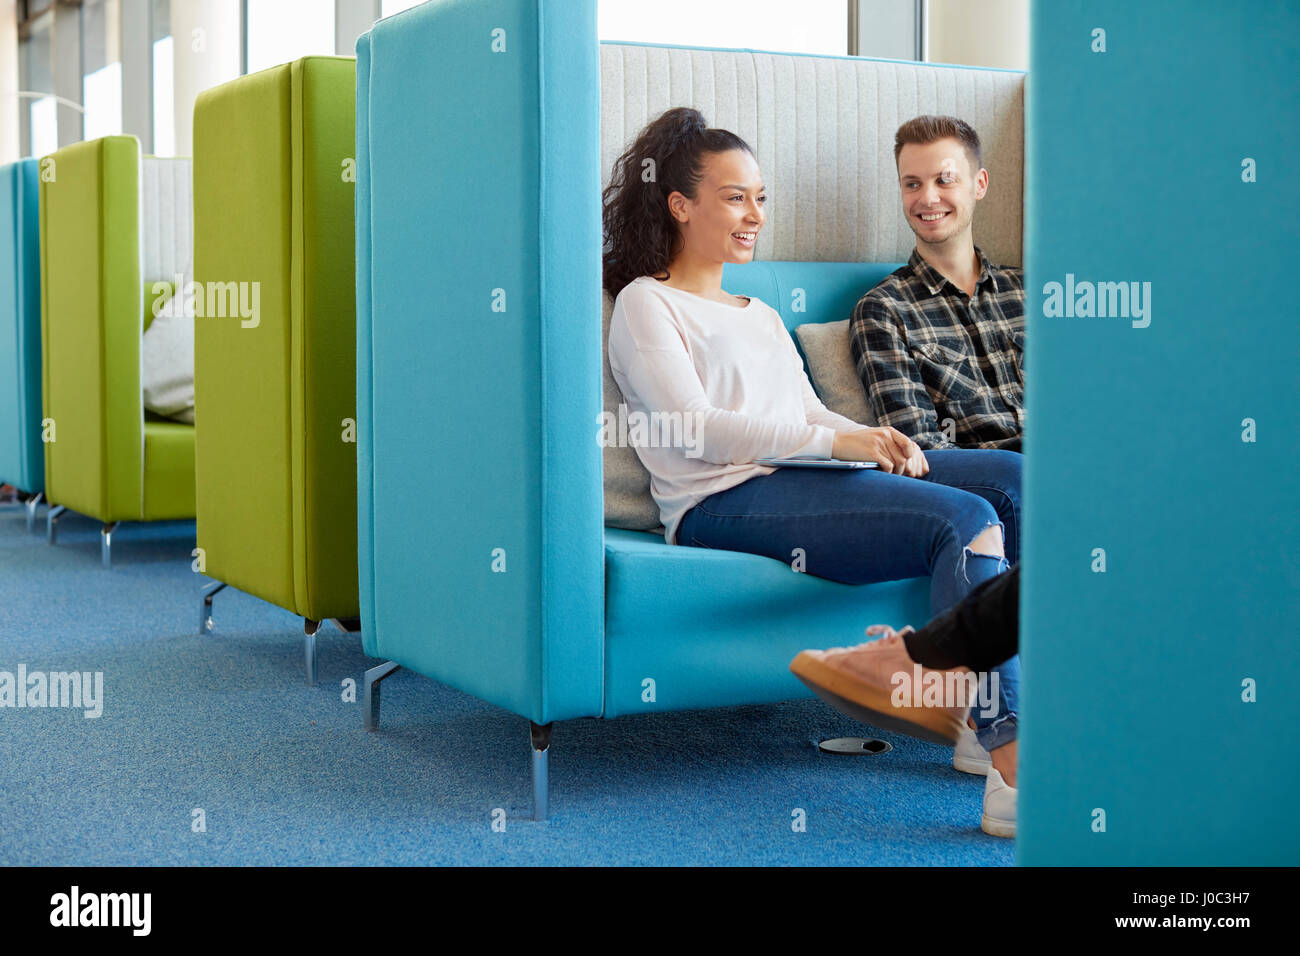 University students relaxing in modern cubicle seating area - Stock Image